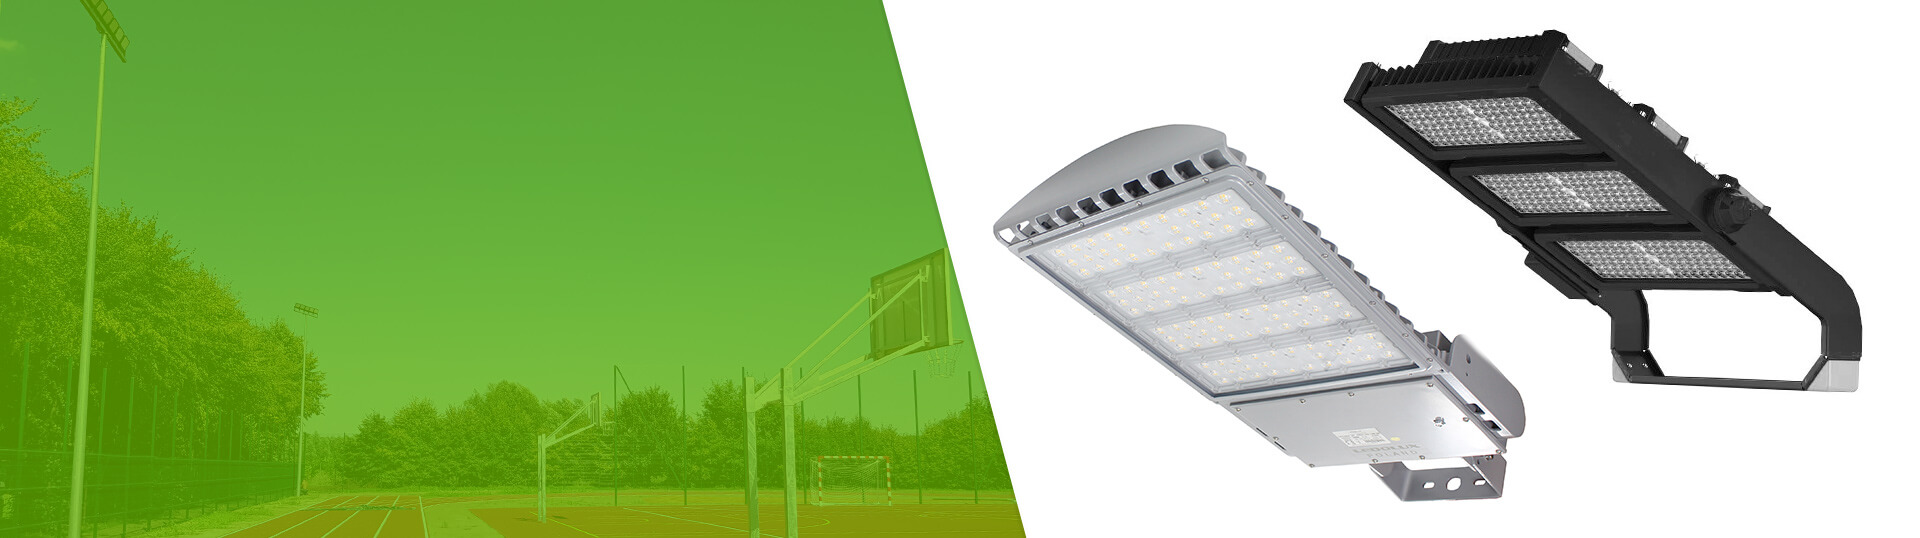 Oprawy LED AREA LED HD AR, ARENA LED